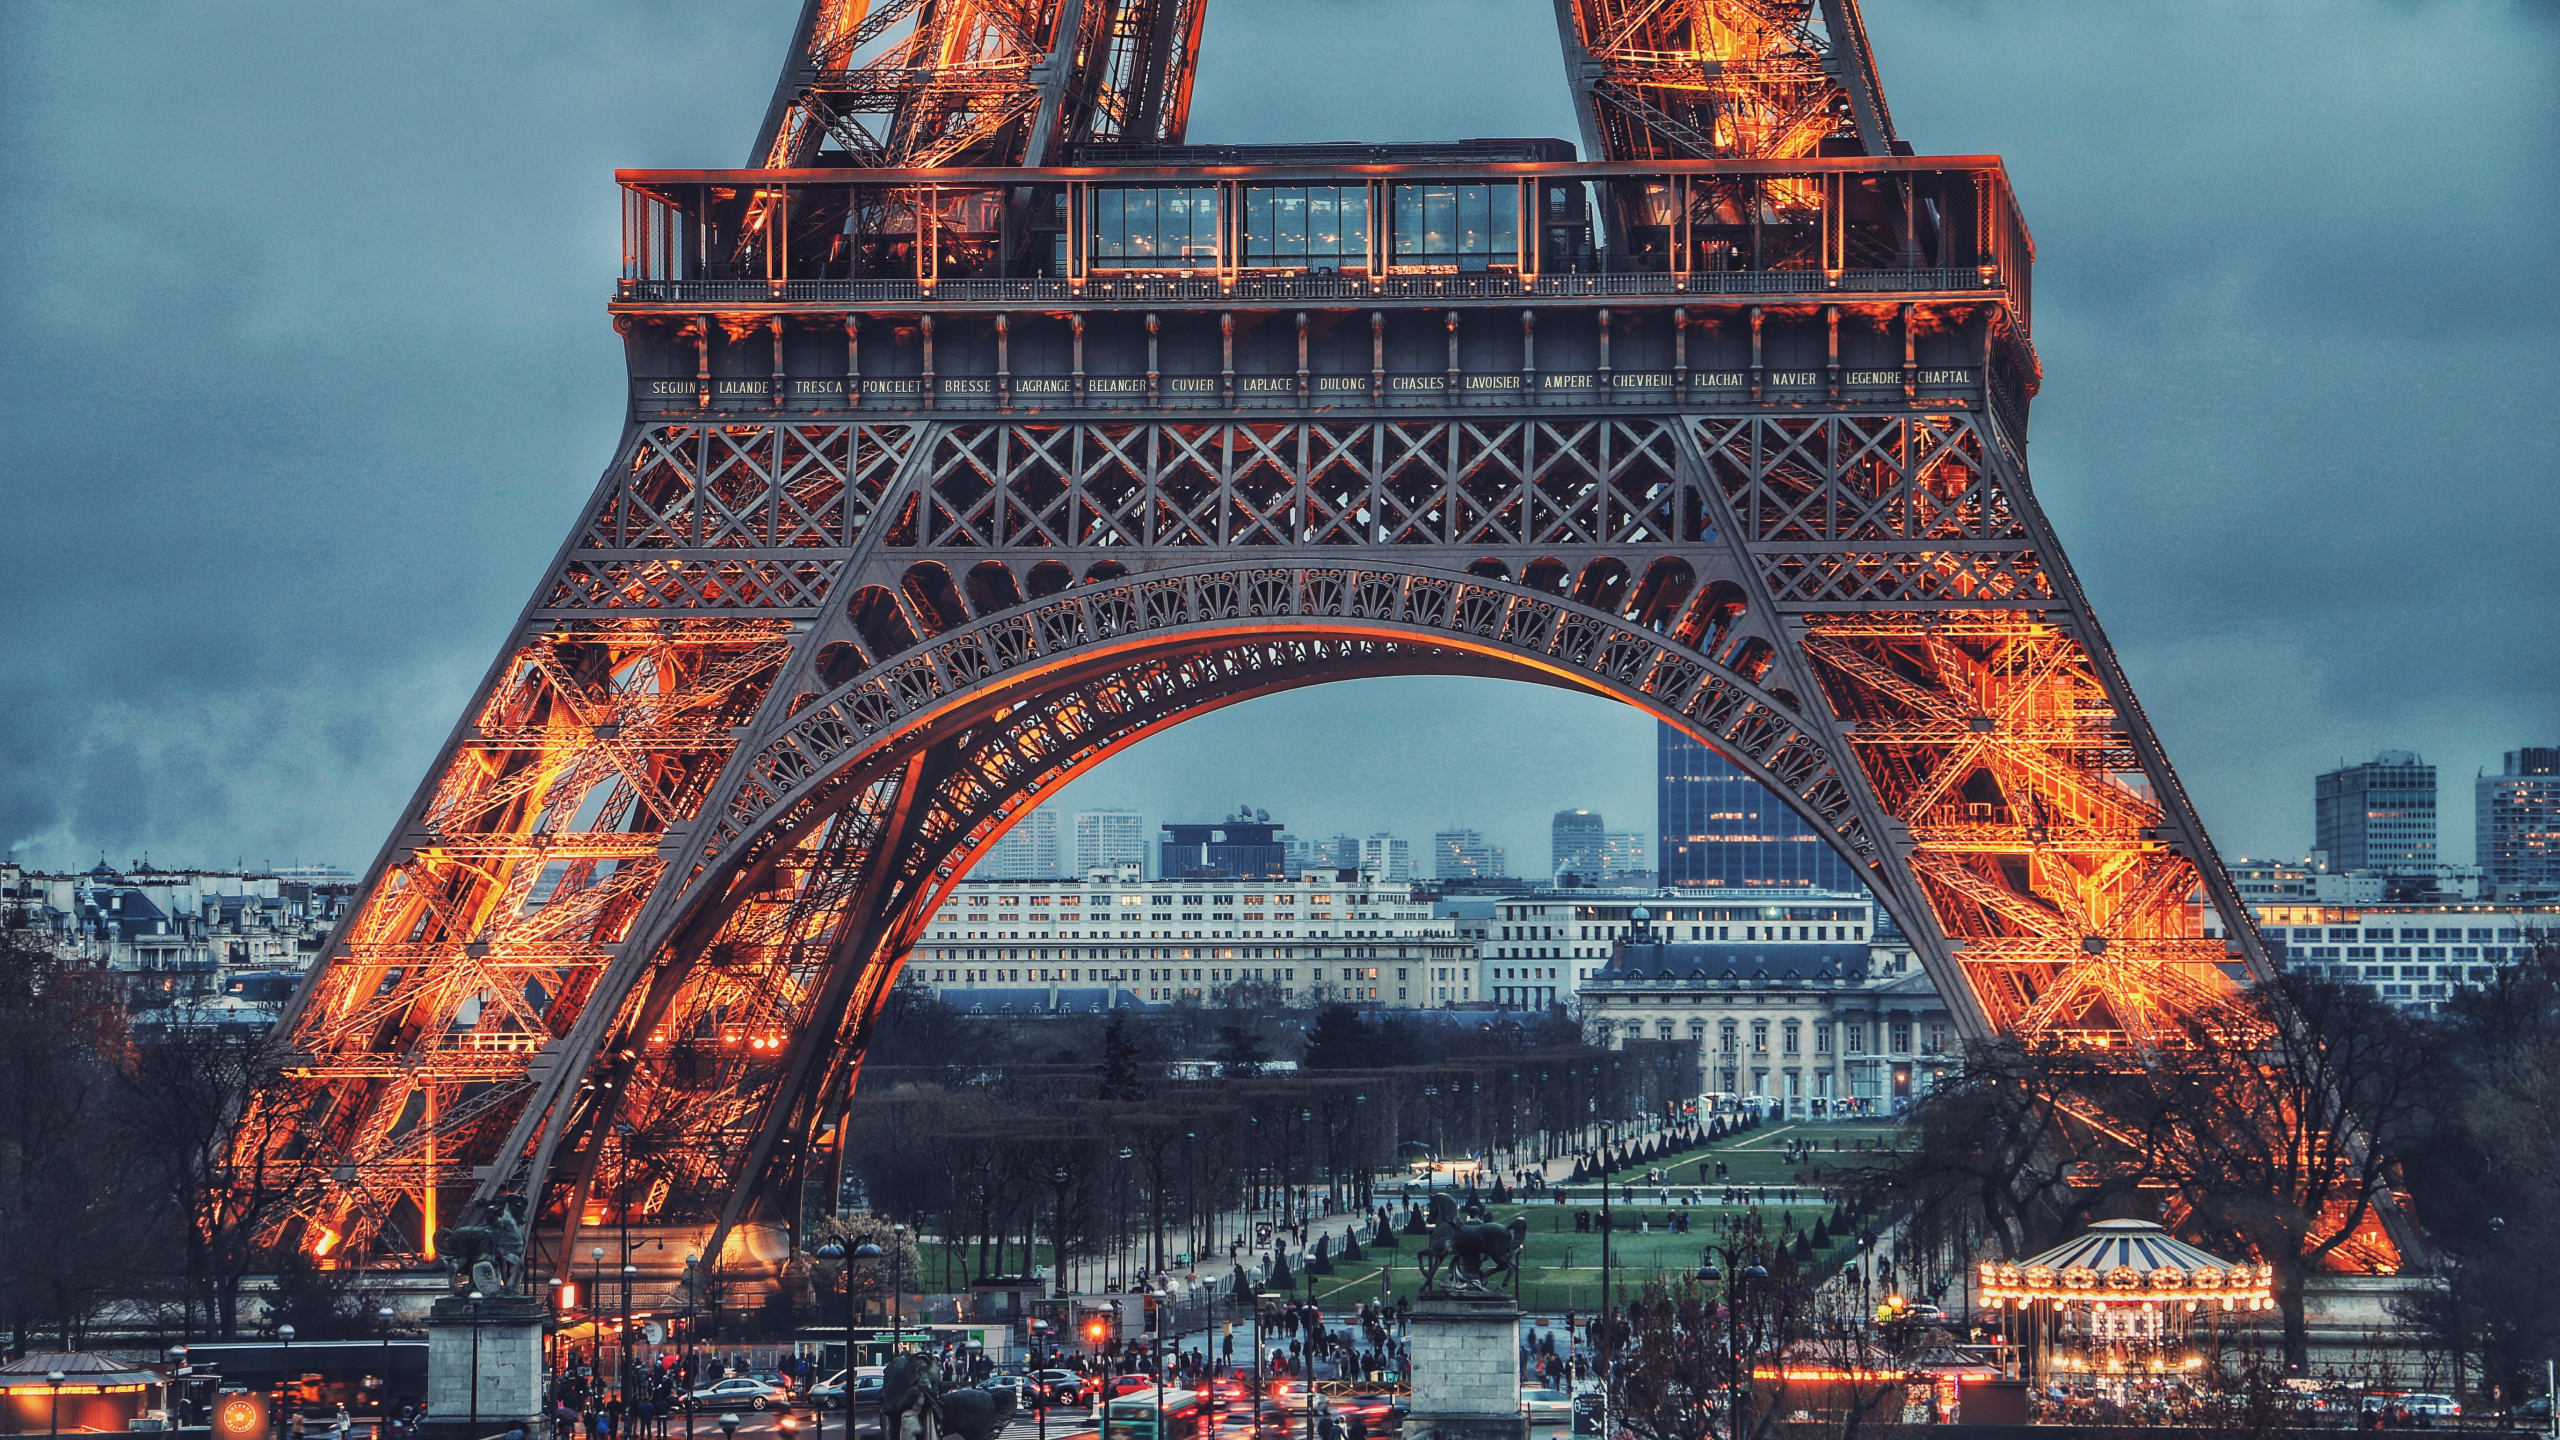 2560x1440 Eiffel Tower Paris France 1440p Resolution Wallpaper Hd City 4k Wallpapers Images Photos And Background